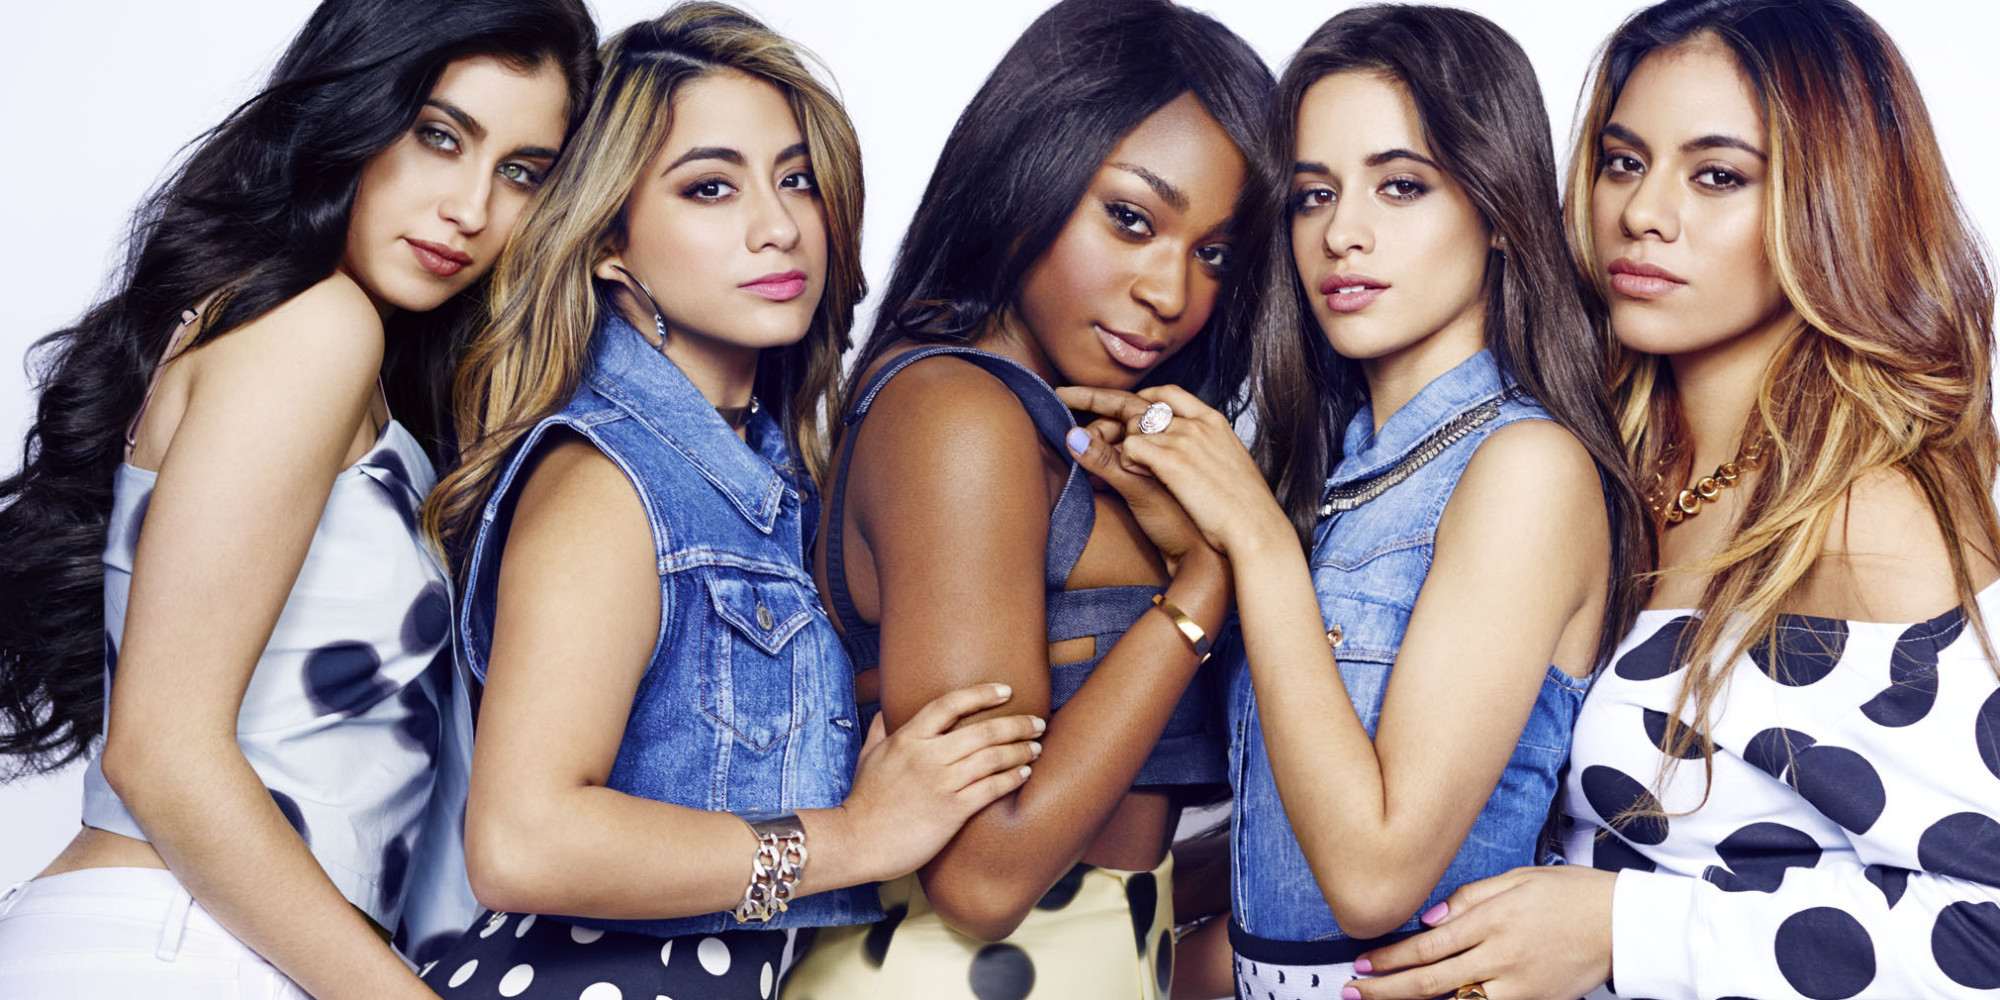 Fifth Harmony con... ¿demasiado Photoshop?